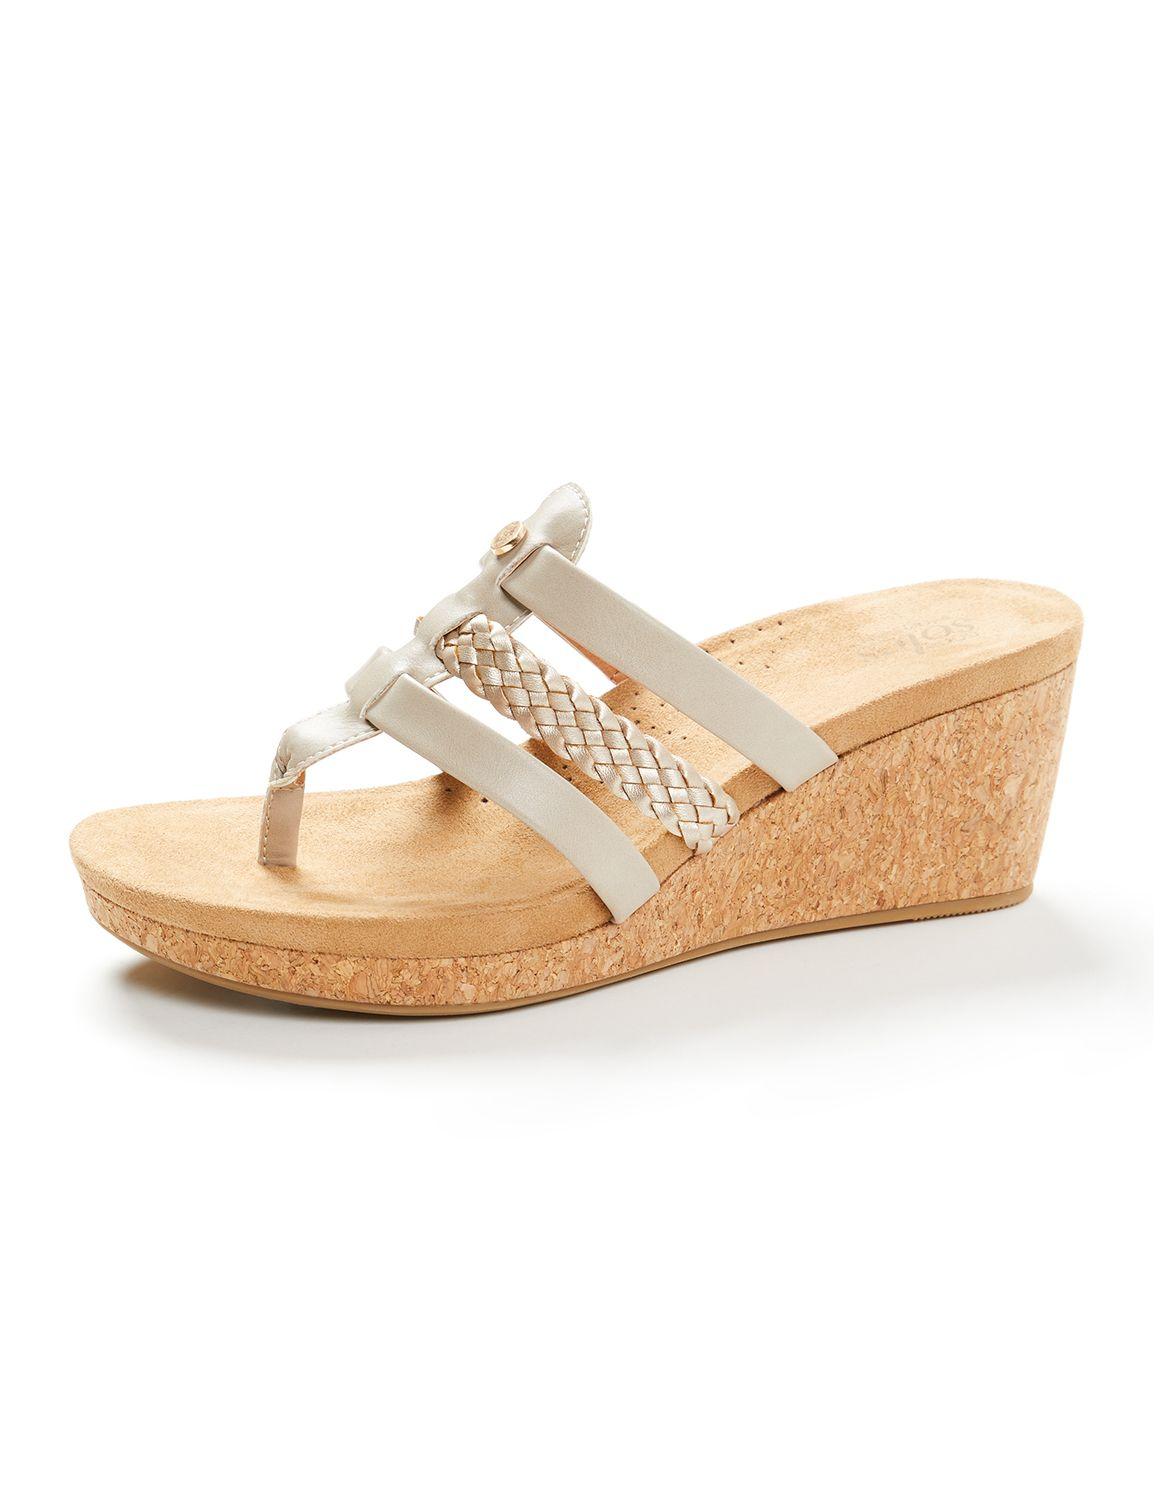 Good Soles Boardwalk Wedge Sandal Cork Wedge w/ Three Straps Wedge WL MP-300097416